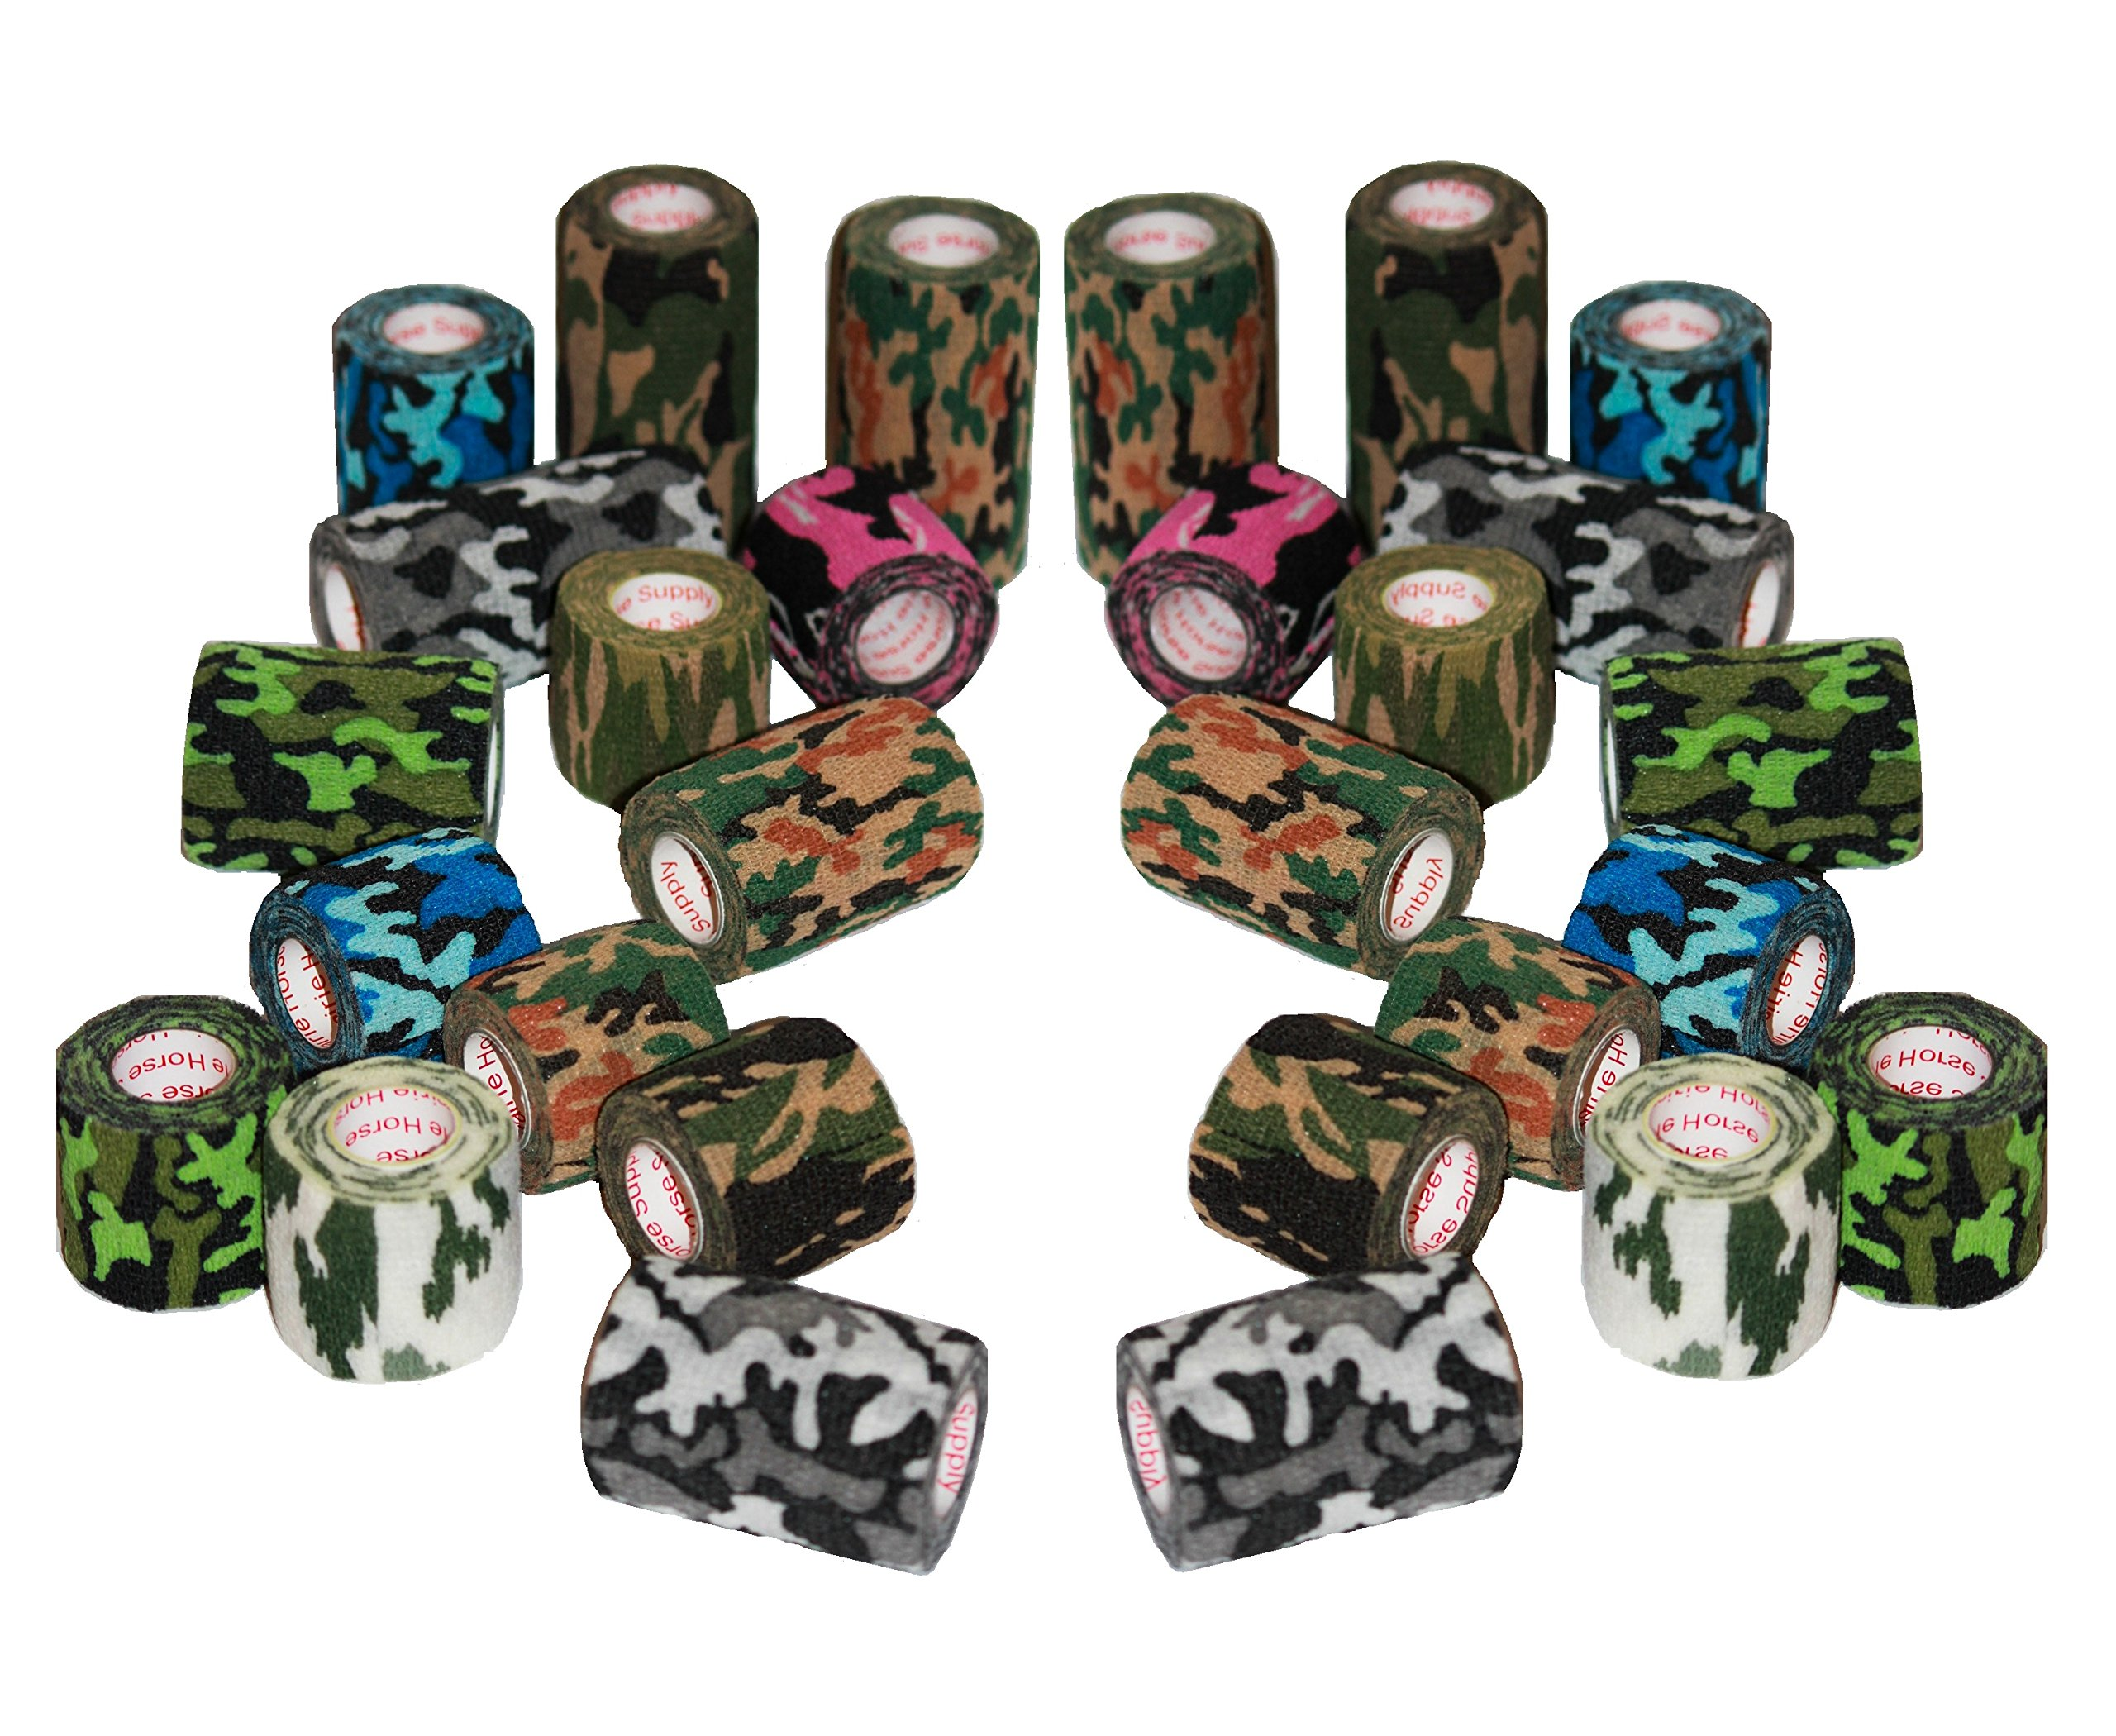 Camo Vet Wrap Tape Bulk 2'', 3'', or 4'' inches x 15' Feet (6, 12, 18 or 24 Rolls) Assorted Camouflage Colors Waterproof Outdoor Self Adhesive Adherent Veterinary Stick Hunting Gun Horse Grip Rap Tape